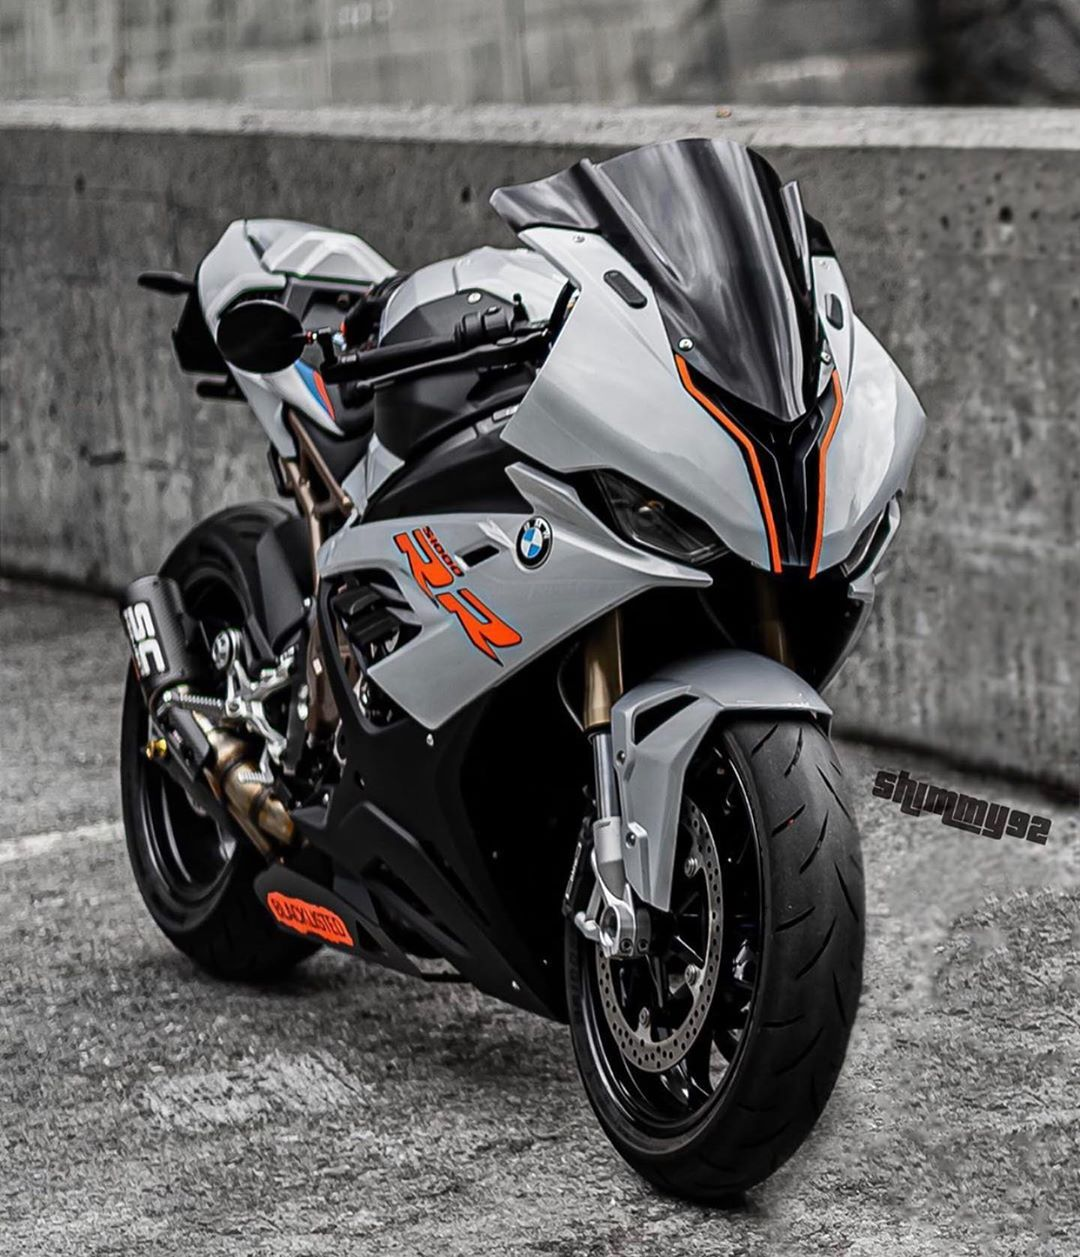 11 3k Likes 39 Comments Bikers Of Instagram Bikersofinstagram On Instagram Color Combo On Point In 2020 Sports Bikes Motorcycles Super Bikes Upcoming Cars